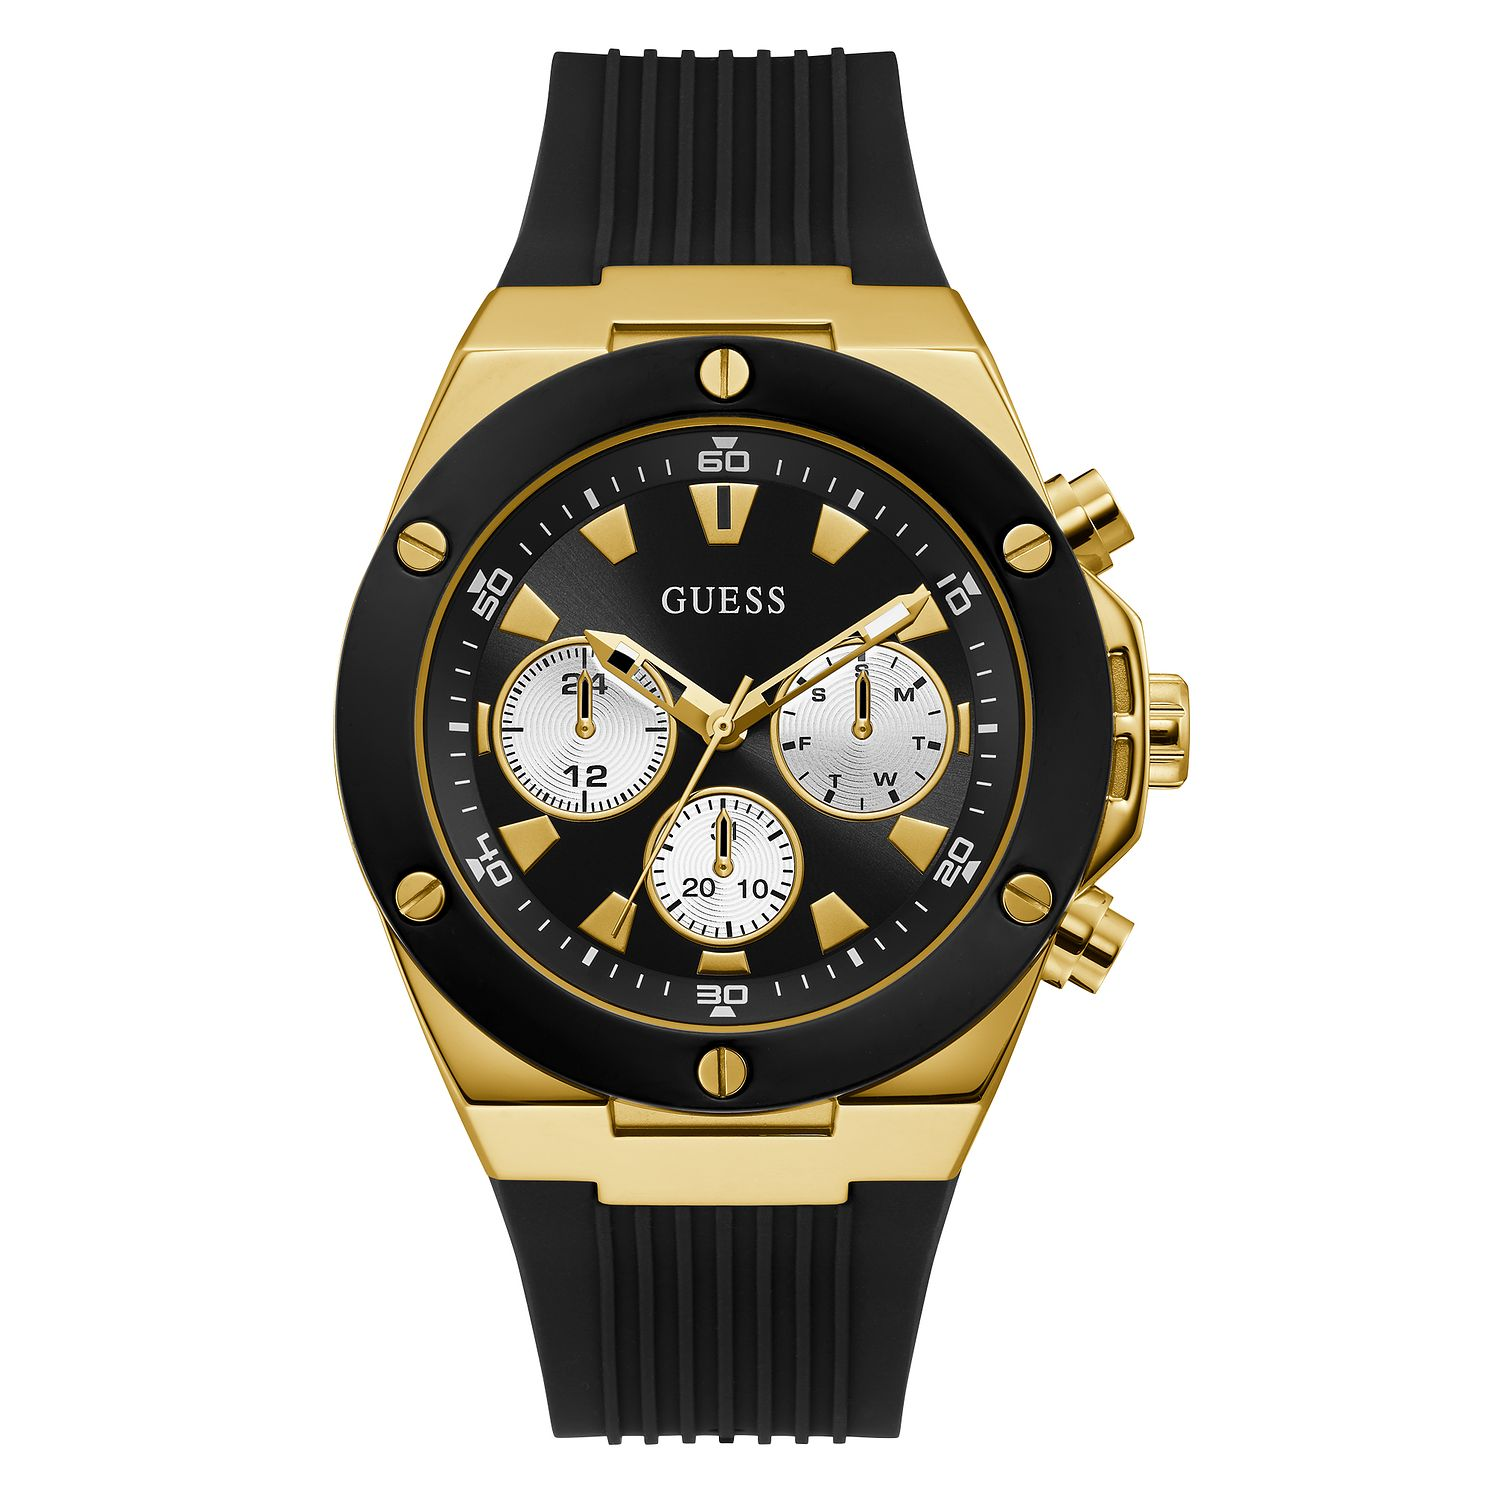 Guess Poseidon Men's Black Silicone Strap Watch - Product number 5191238